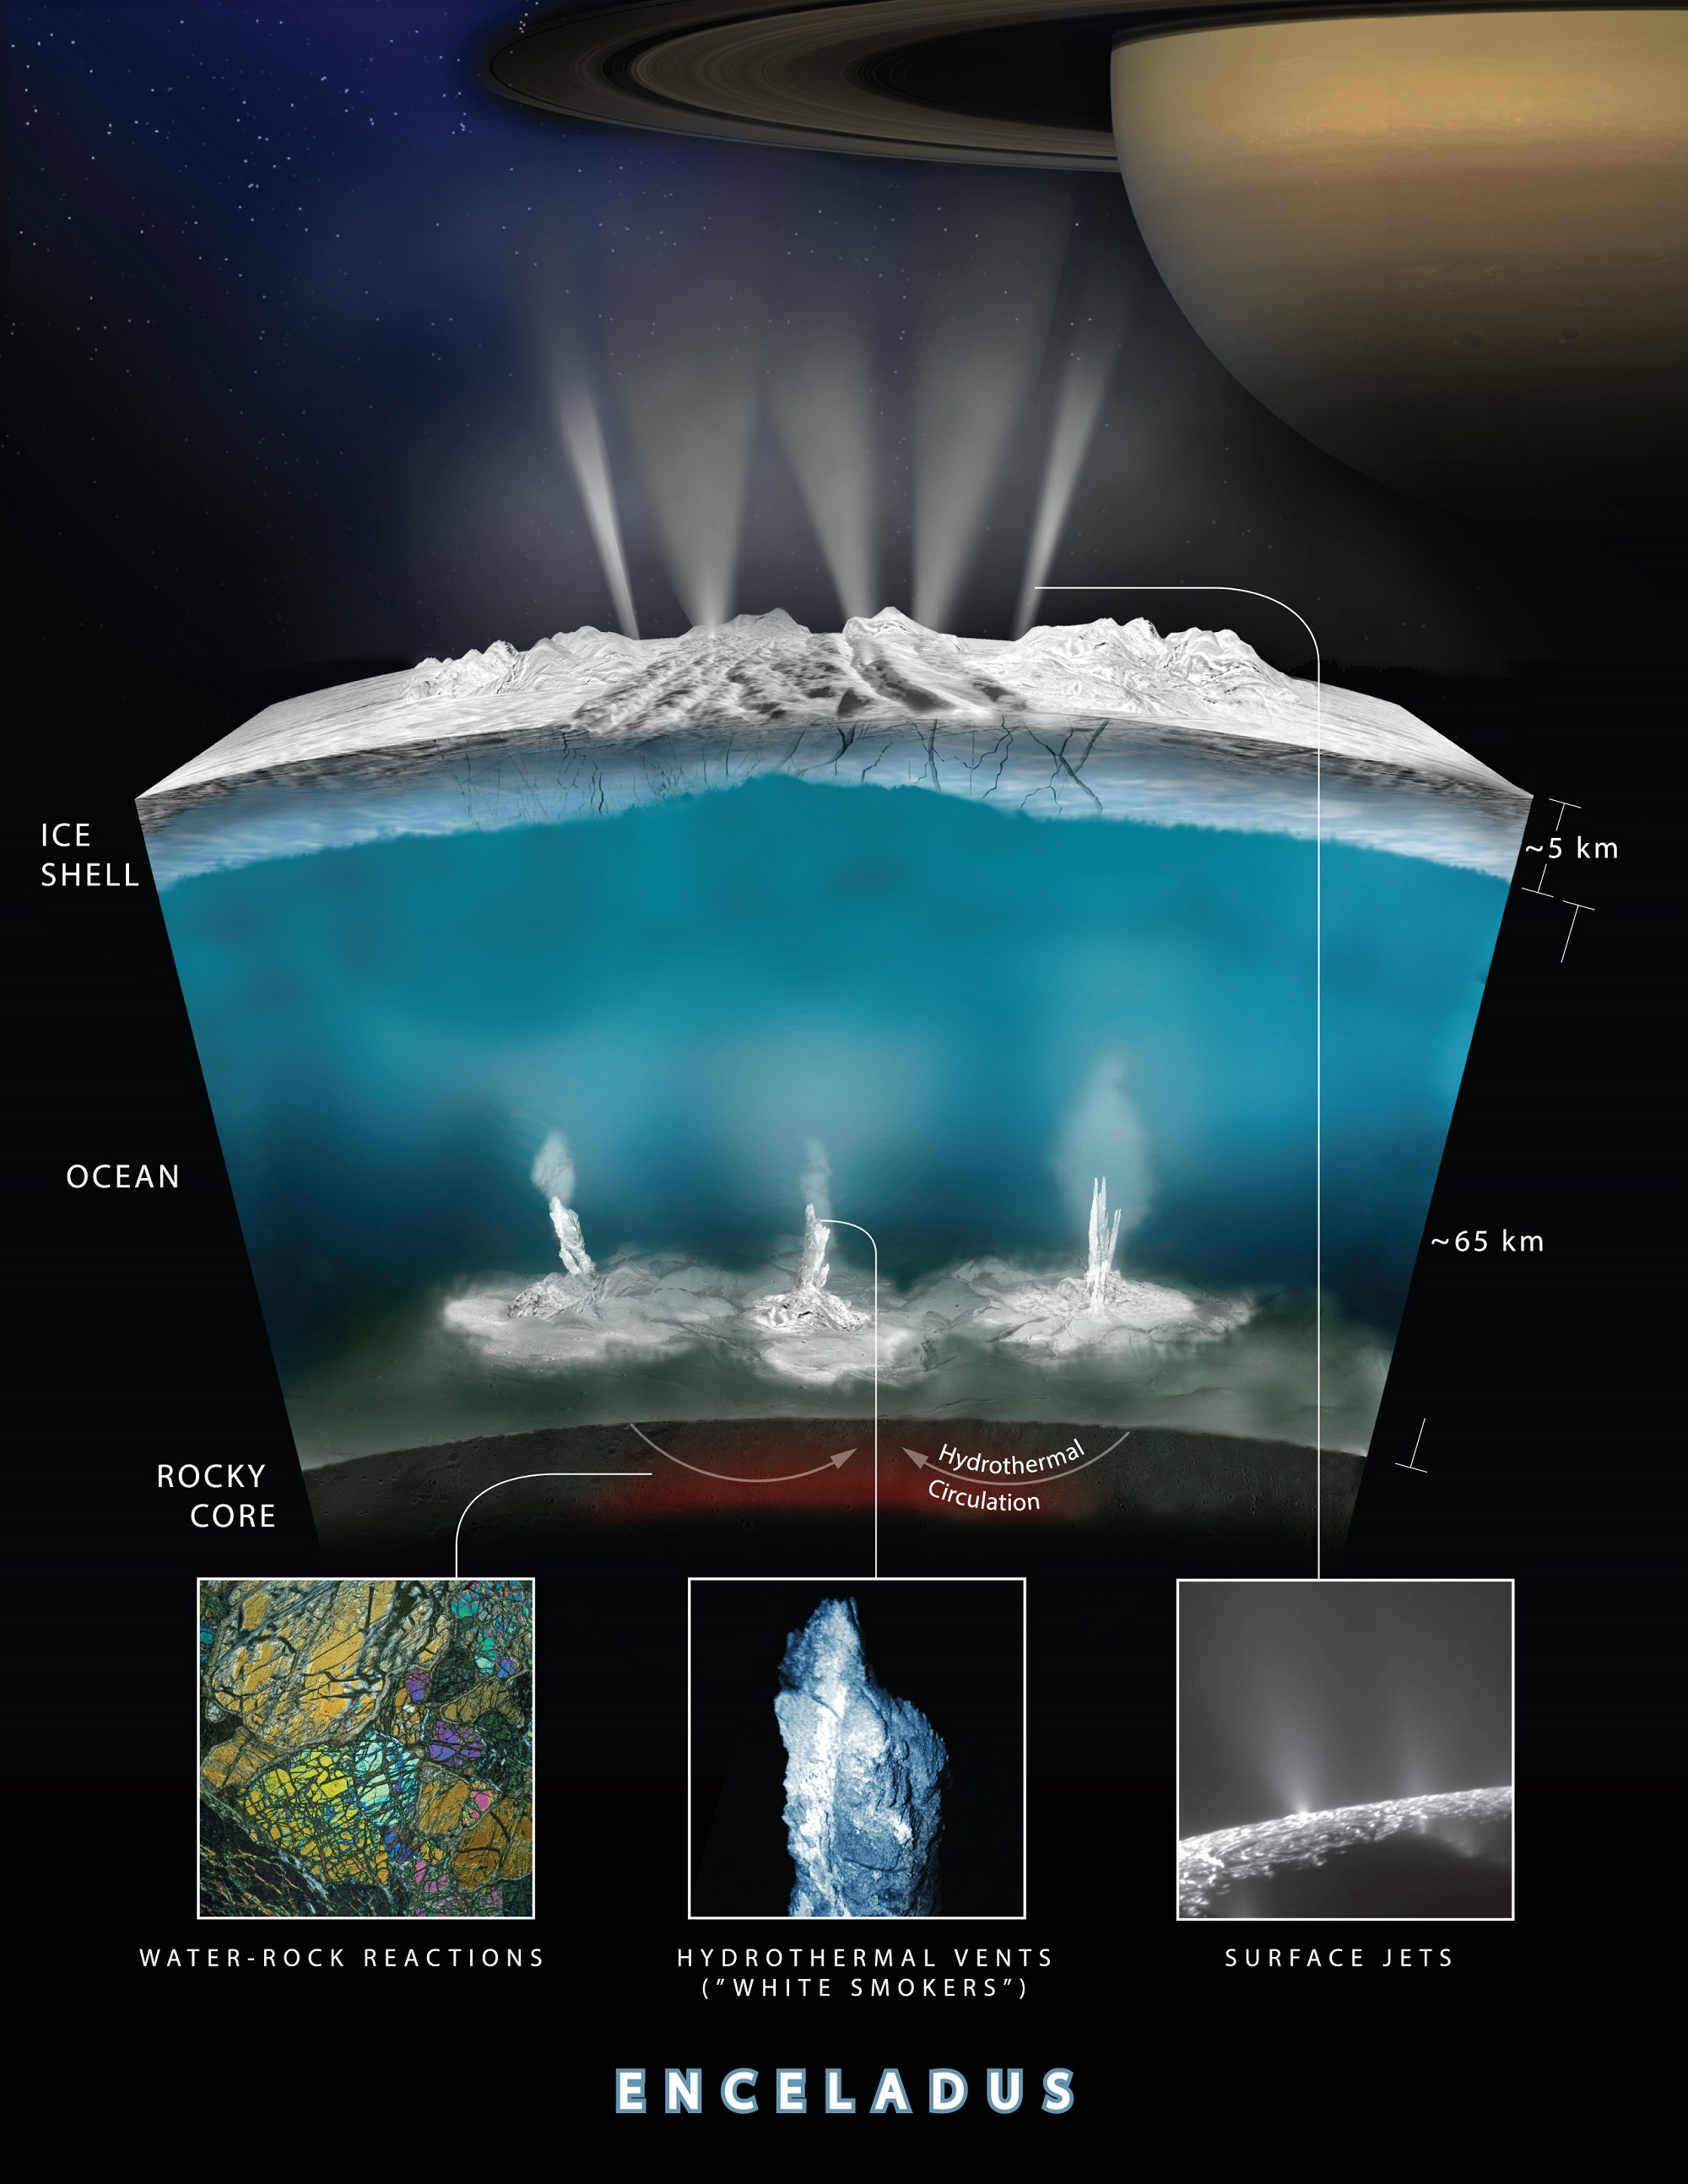 Artist impression of an interior cross-section of the crust of Enceladus, which shows how hydrothermal activity may be causing the plumes of water at the moon's surface. Credits: NASA-GSFC/SVS, NASA/JPL-Caltech/Southwest Research Institute